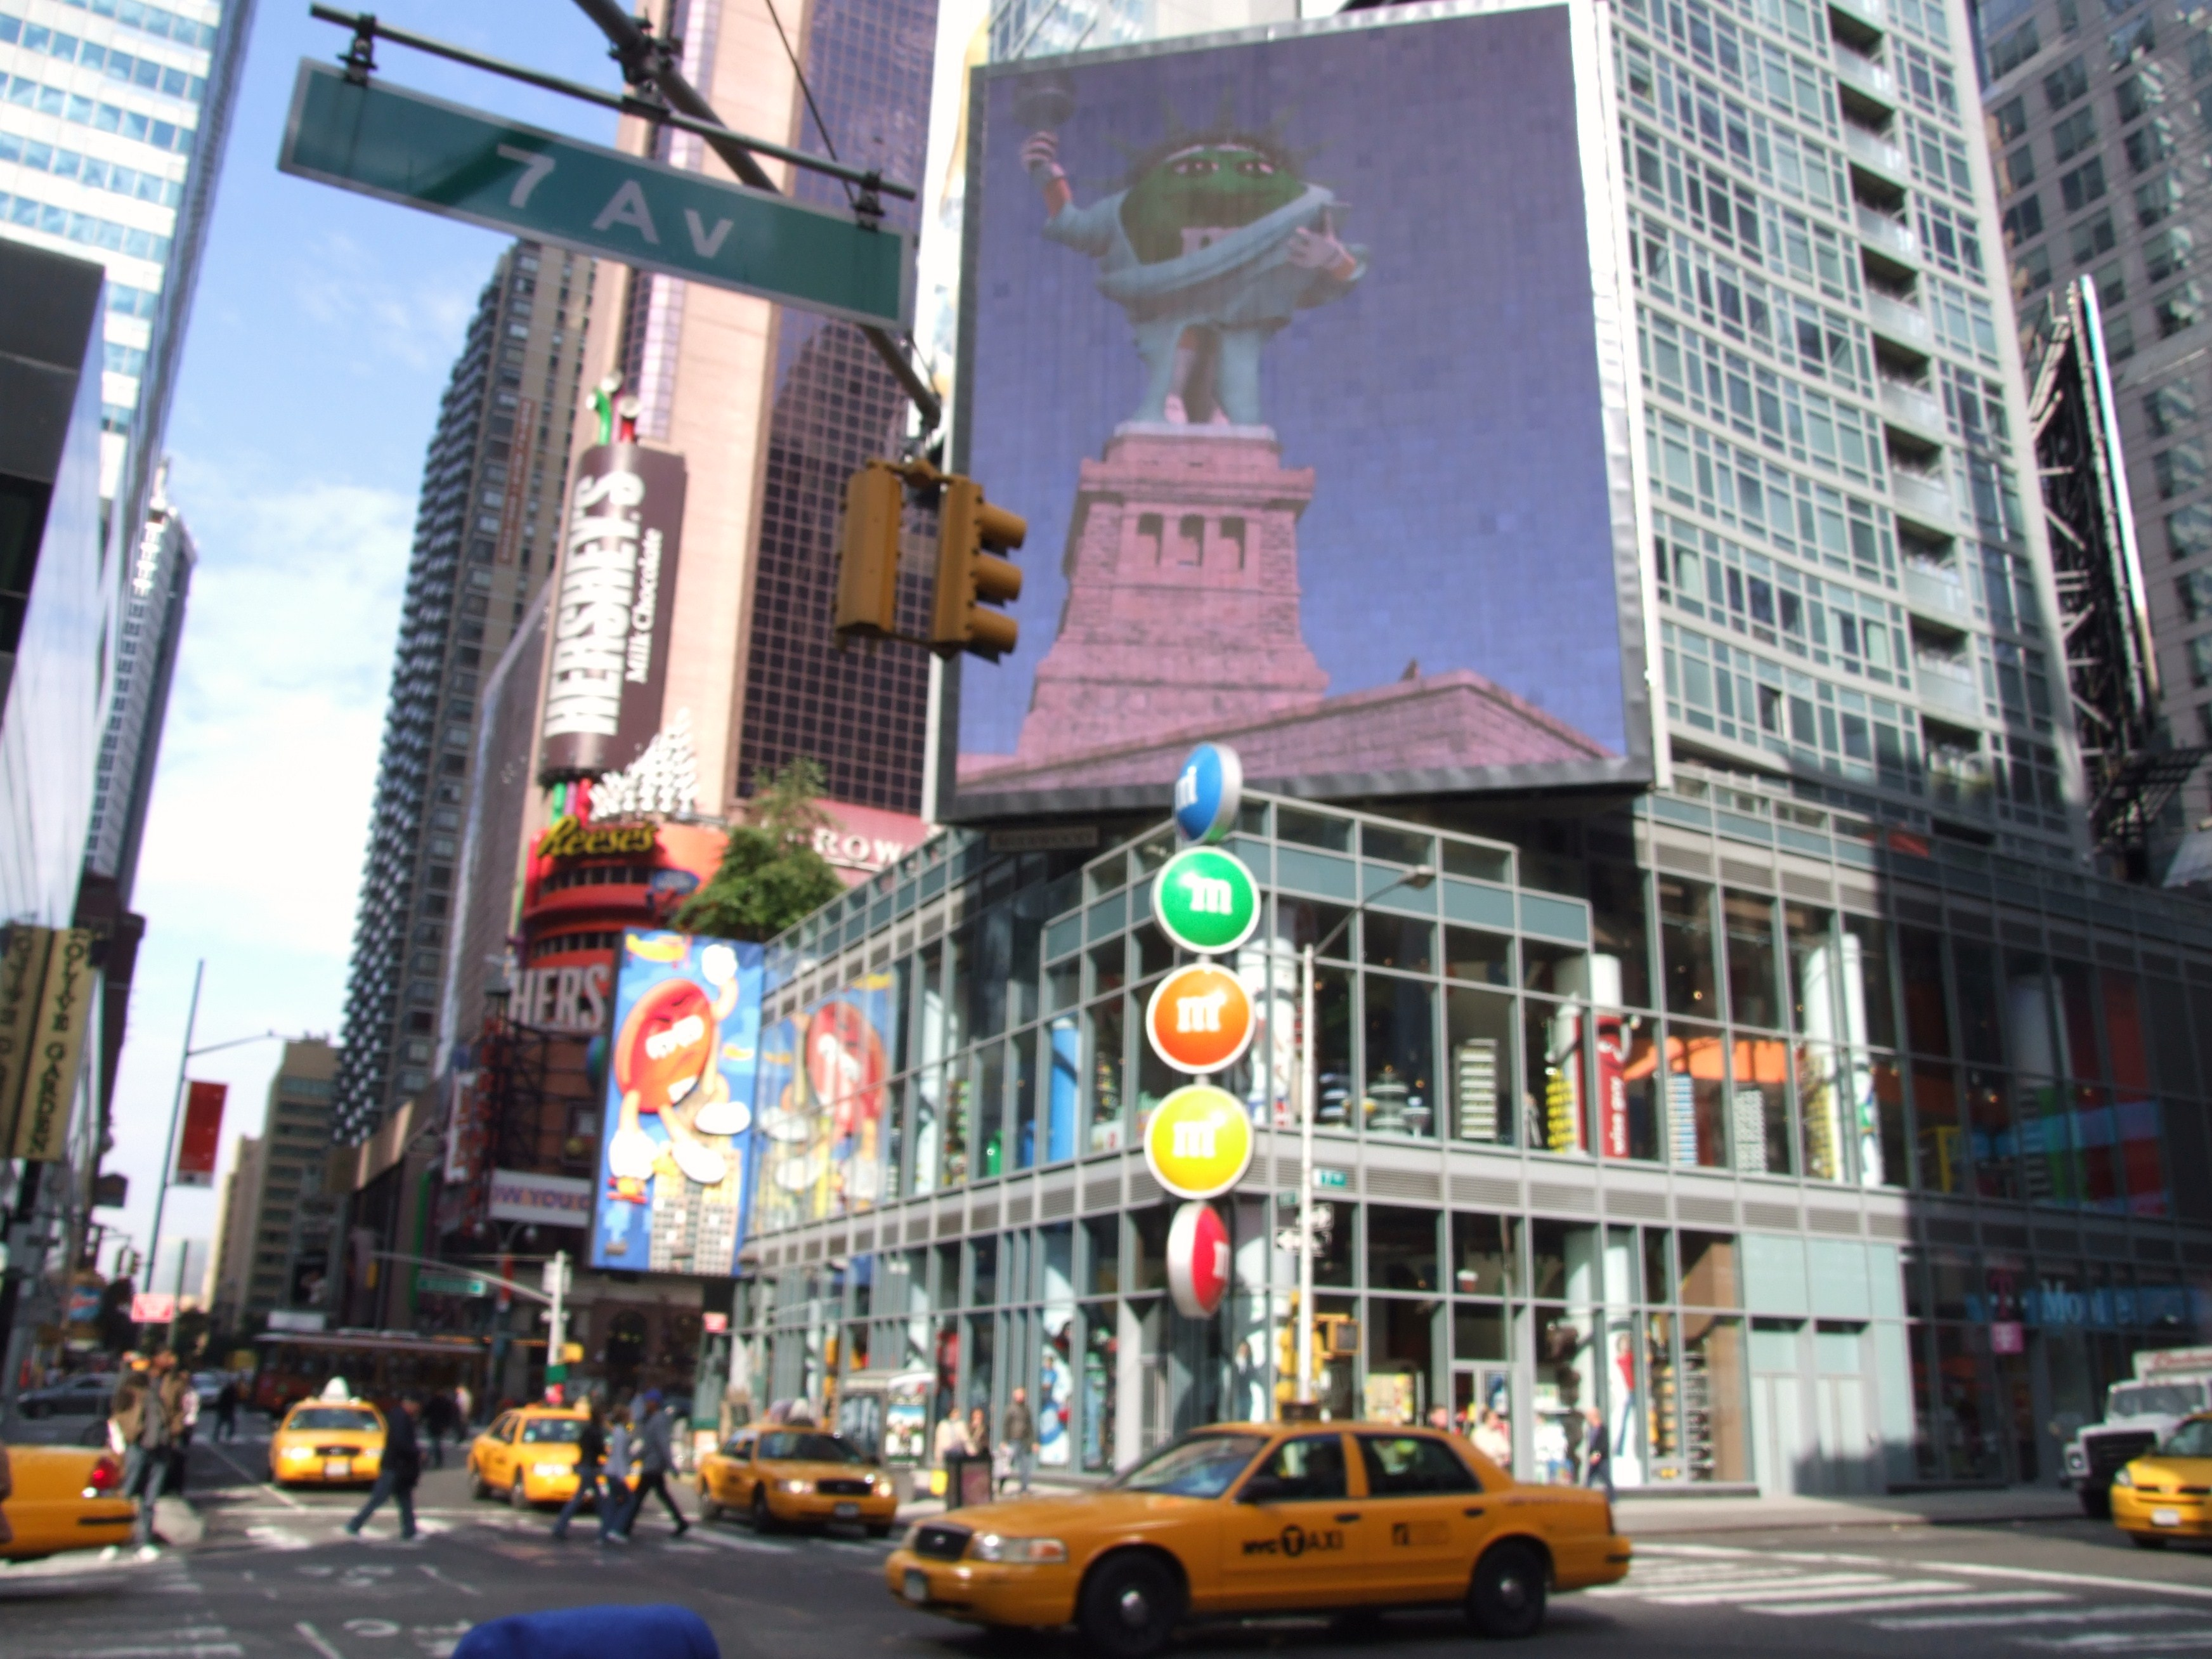 File:M&Ms World, Times Square.JPG - Wikimedia Commons